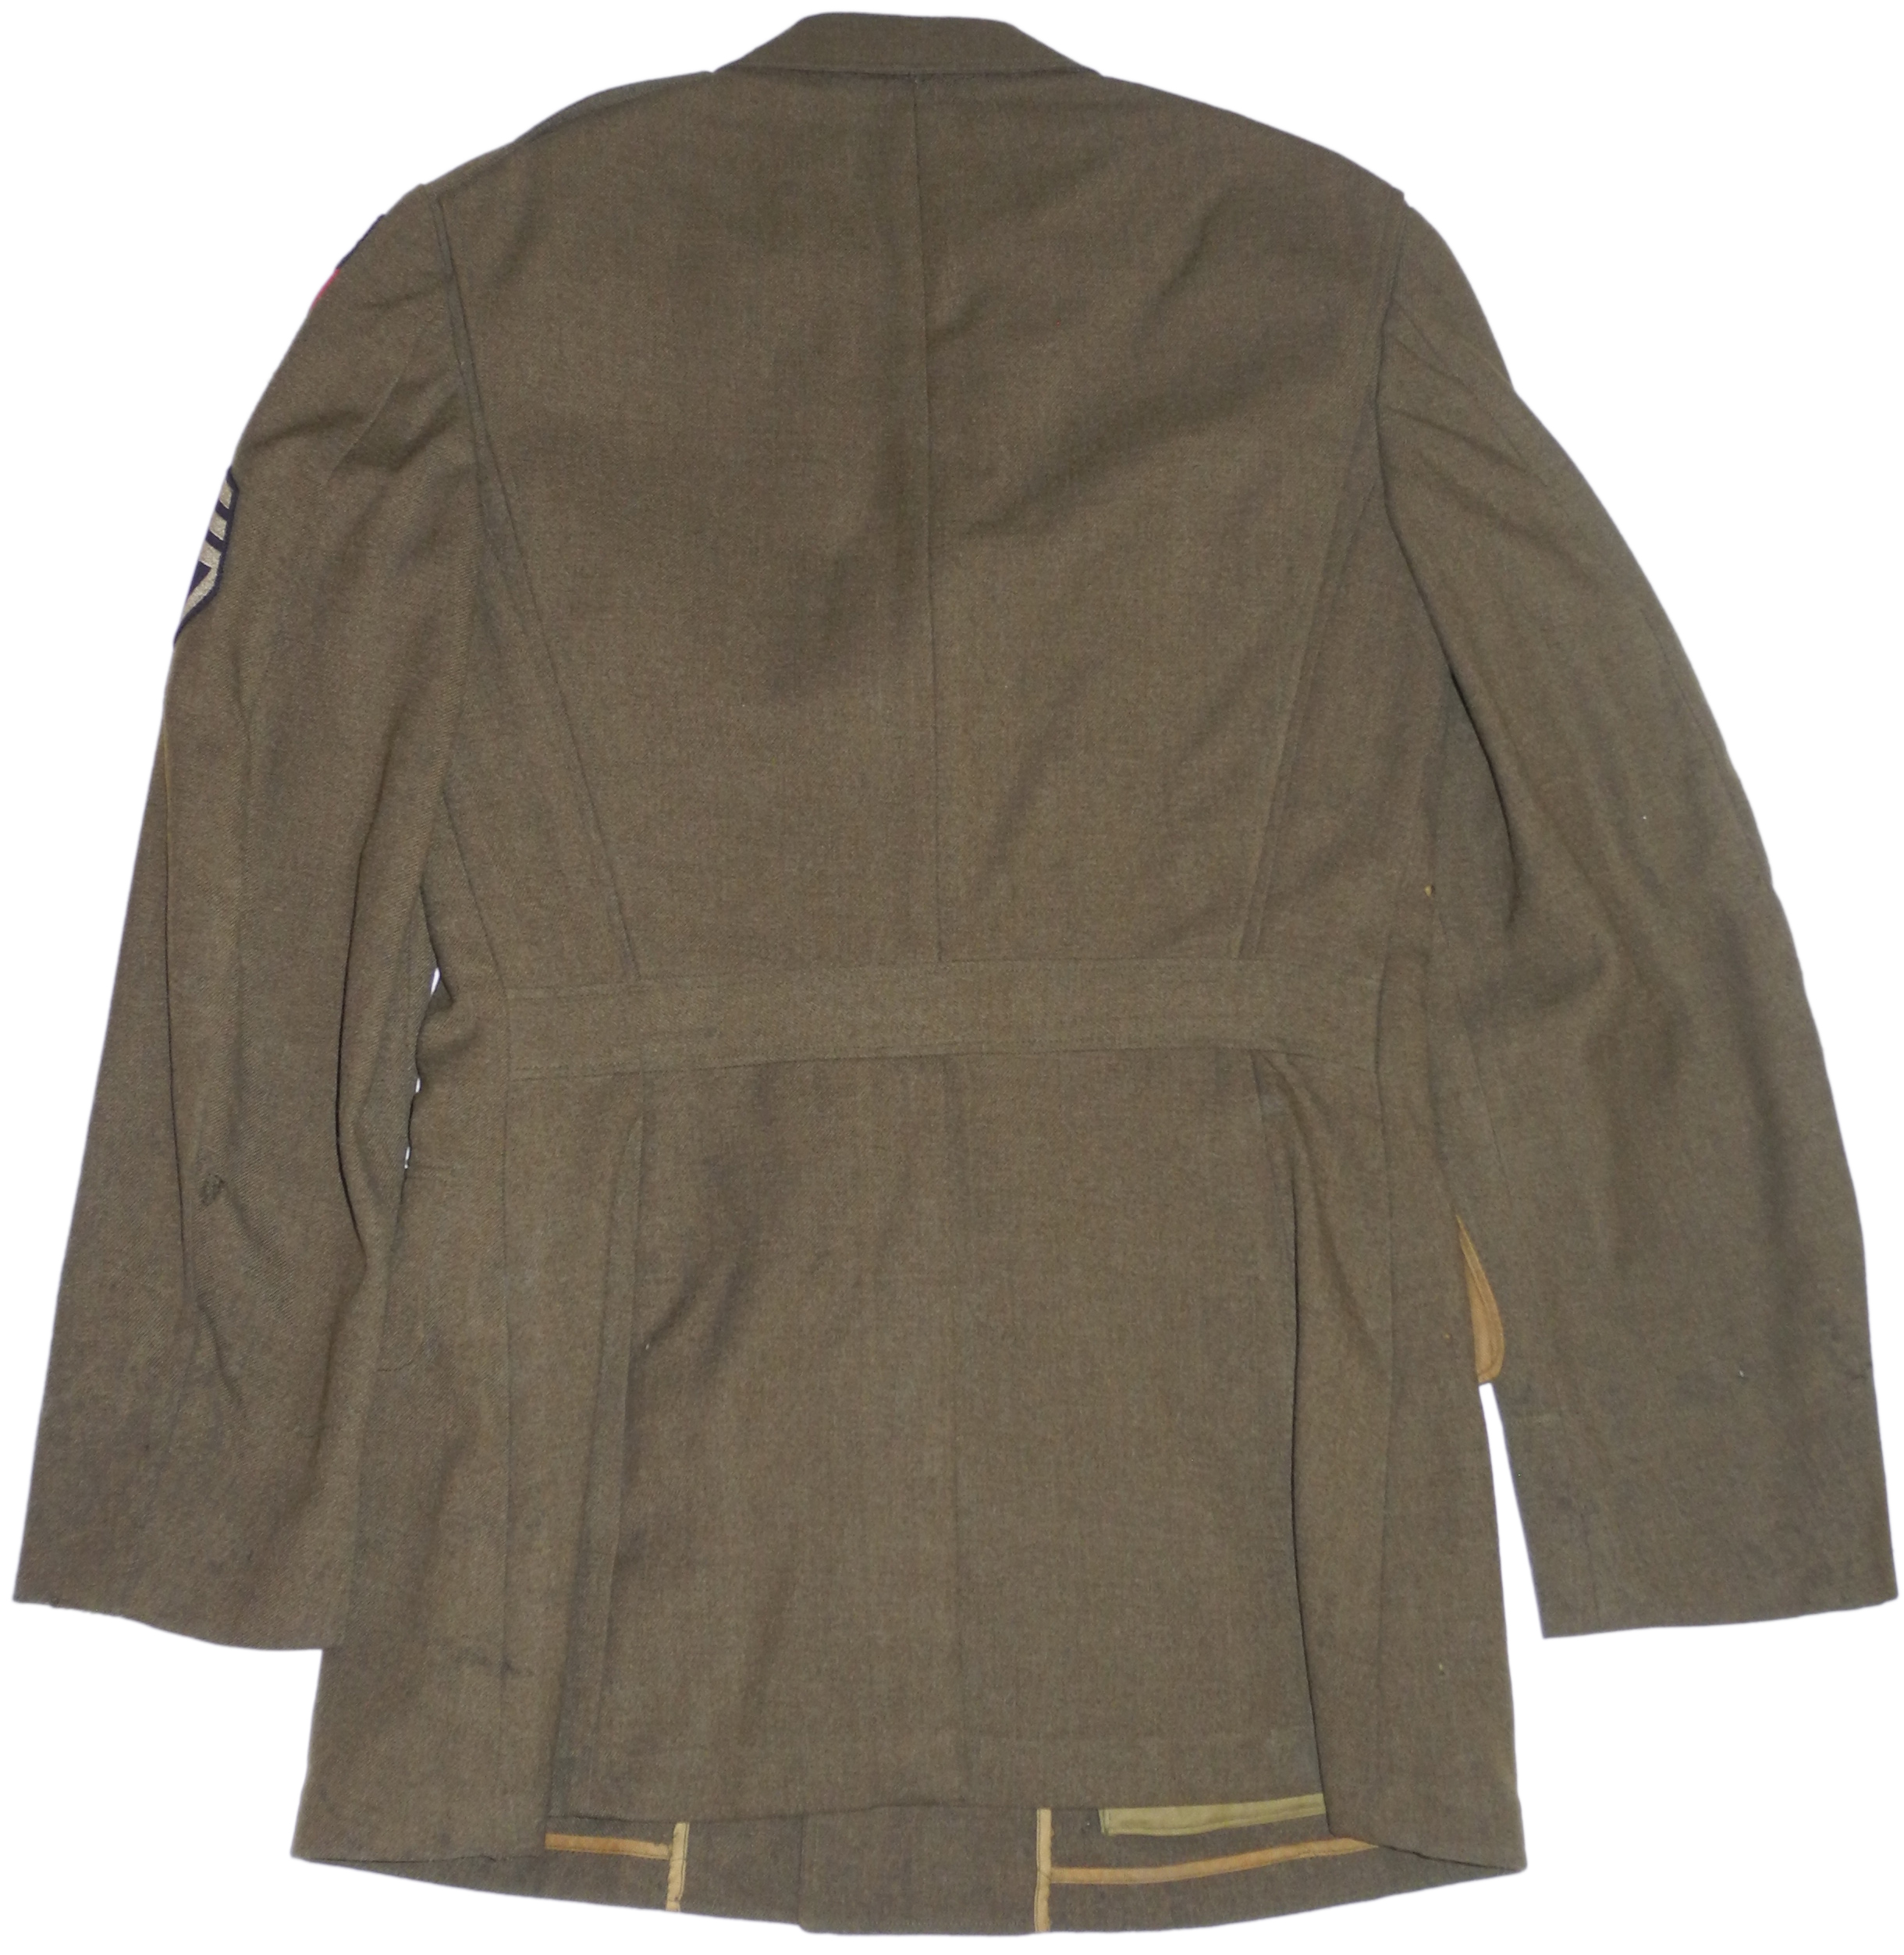 AAF enlisted tunic to sergeant CBI